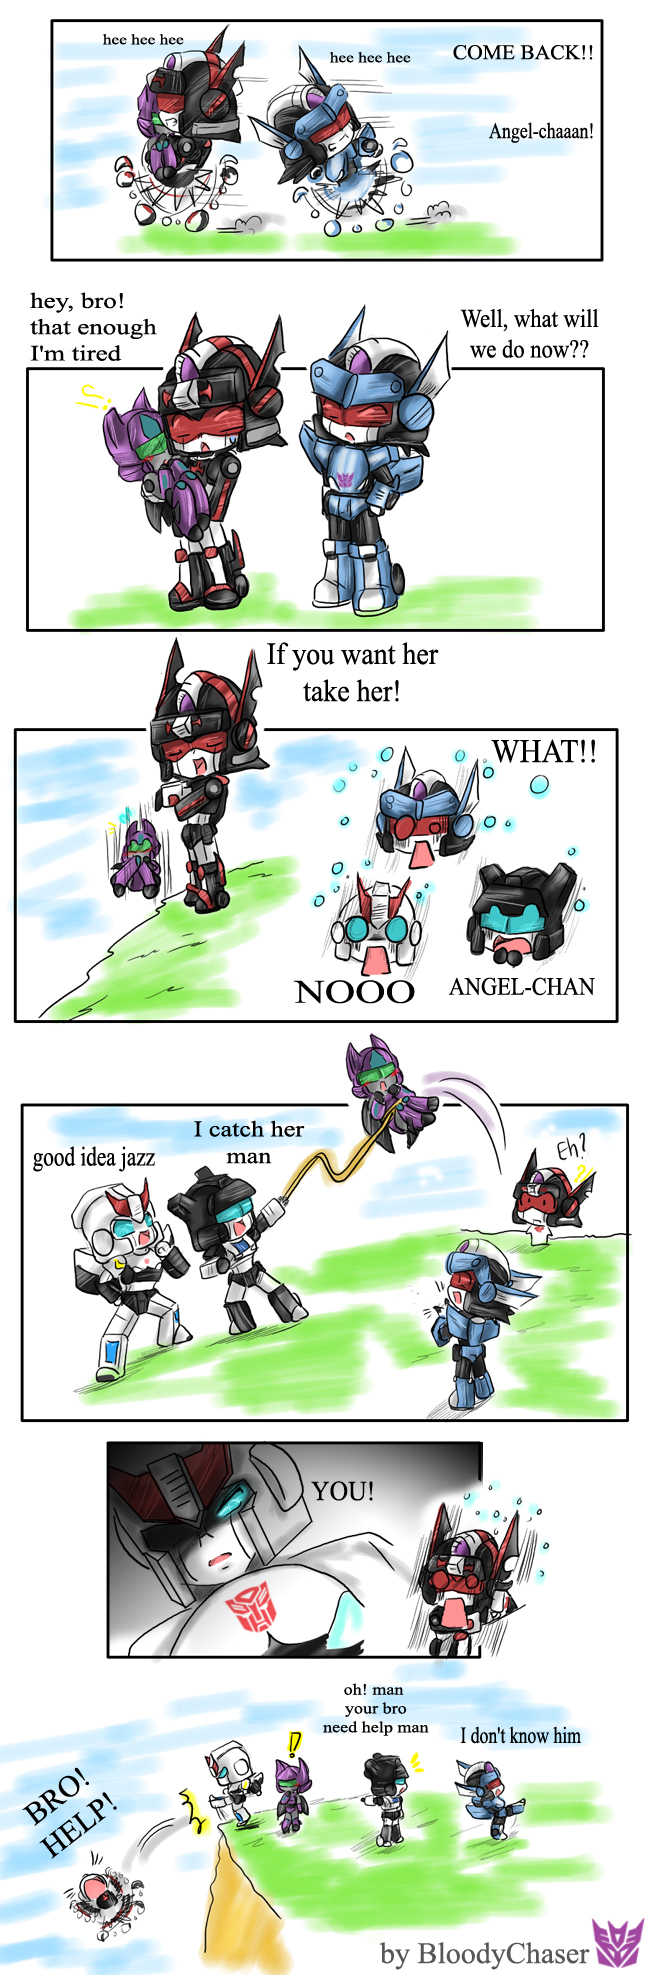 Bts tf favourites by madij7717 on deviantart for Table th tf 00 02